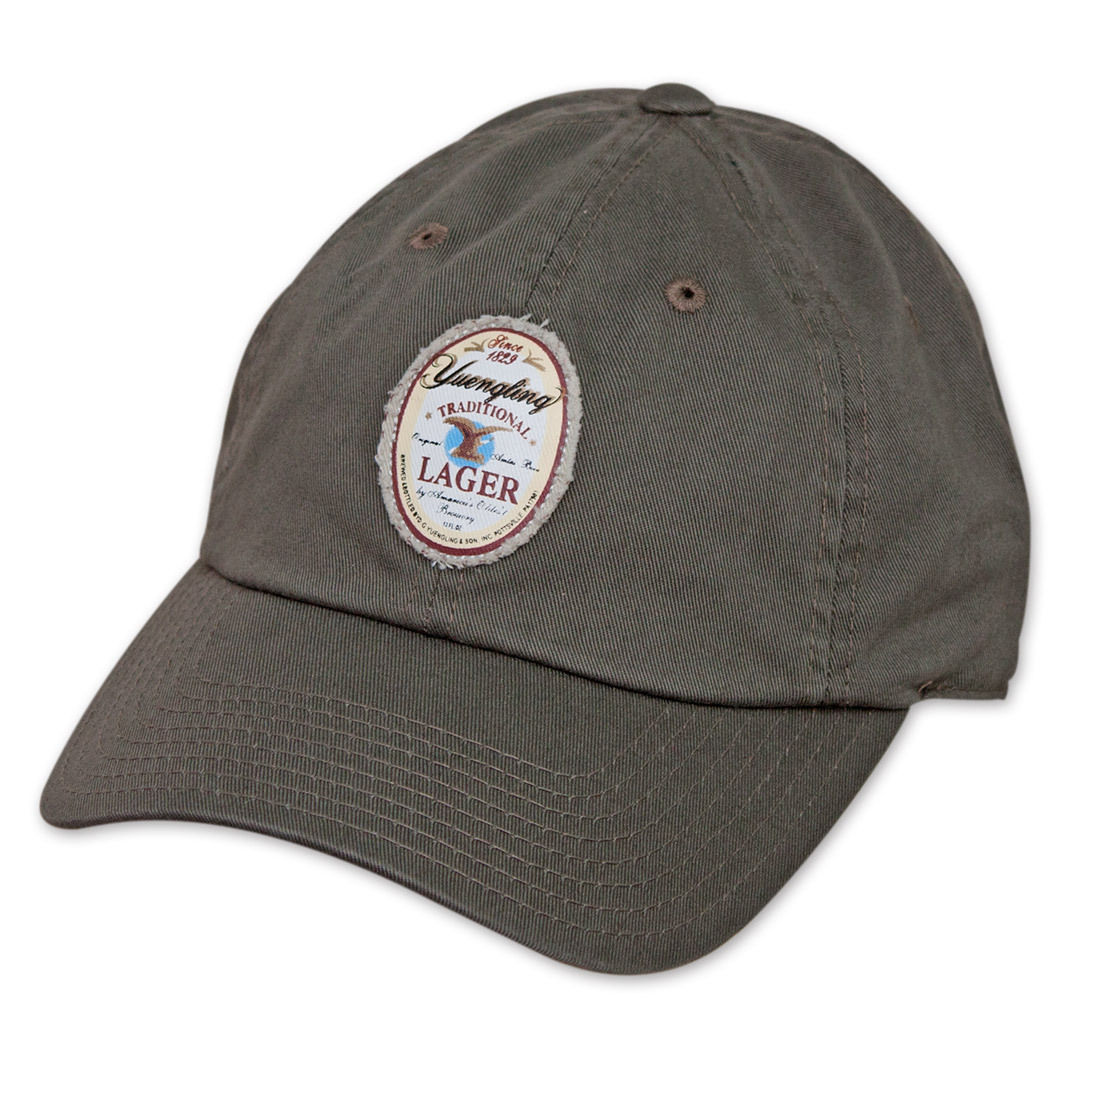 Yuengling Lager Oval Logo Adjustable Cap Green